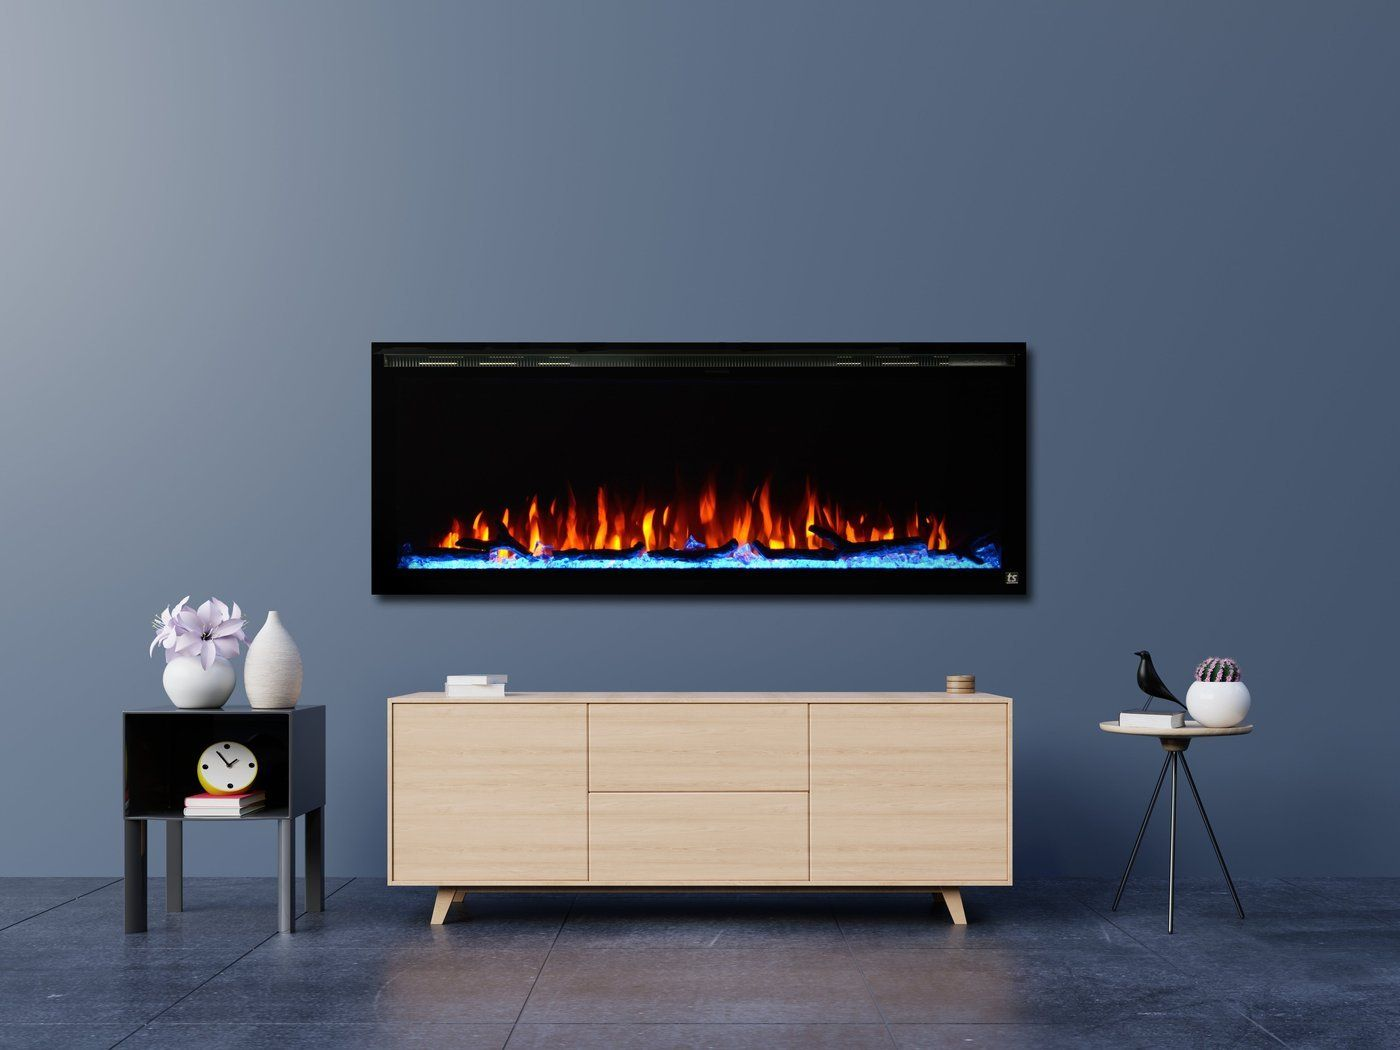 Best Recessed Electric Fireplace Best Of Best 15 Electric Fireplace Ideas Diy